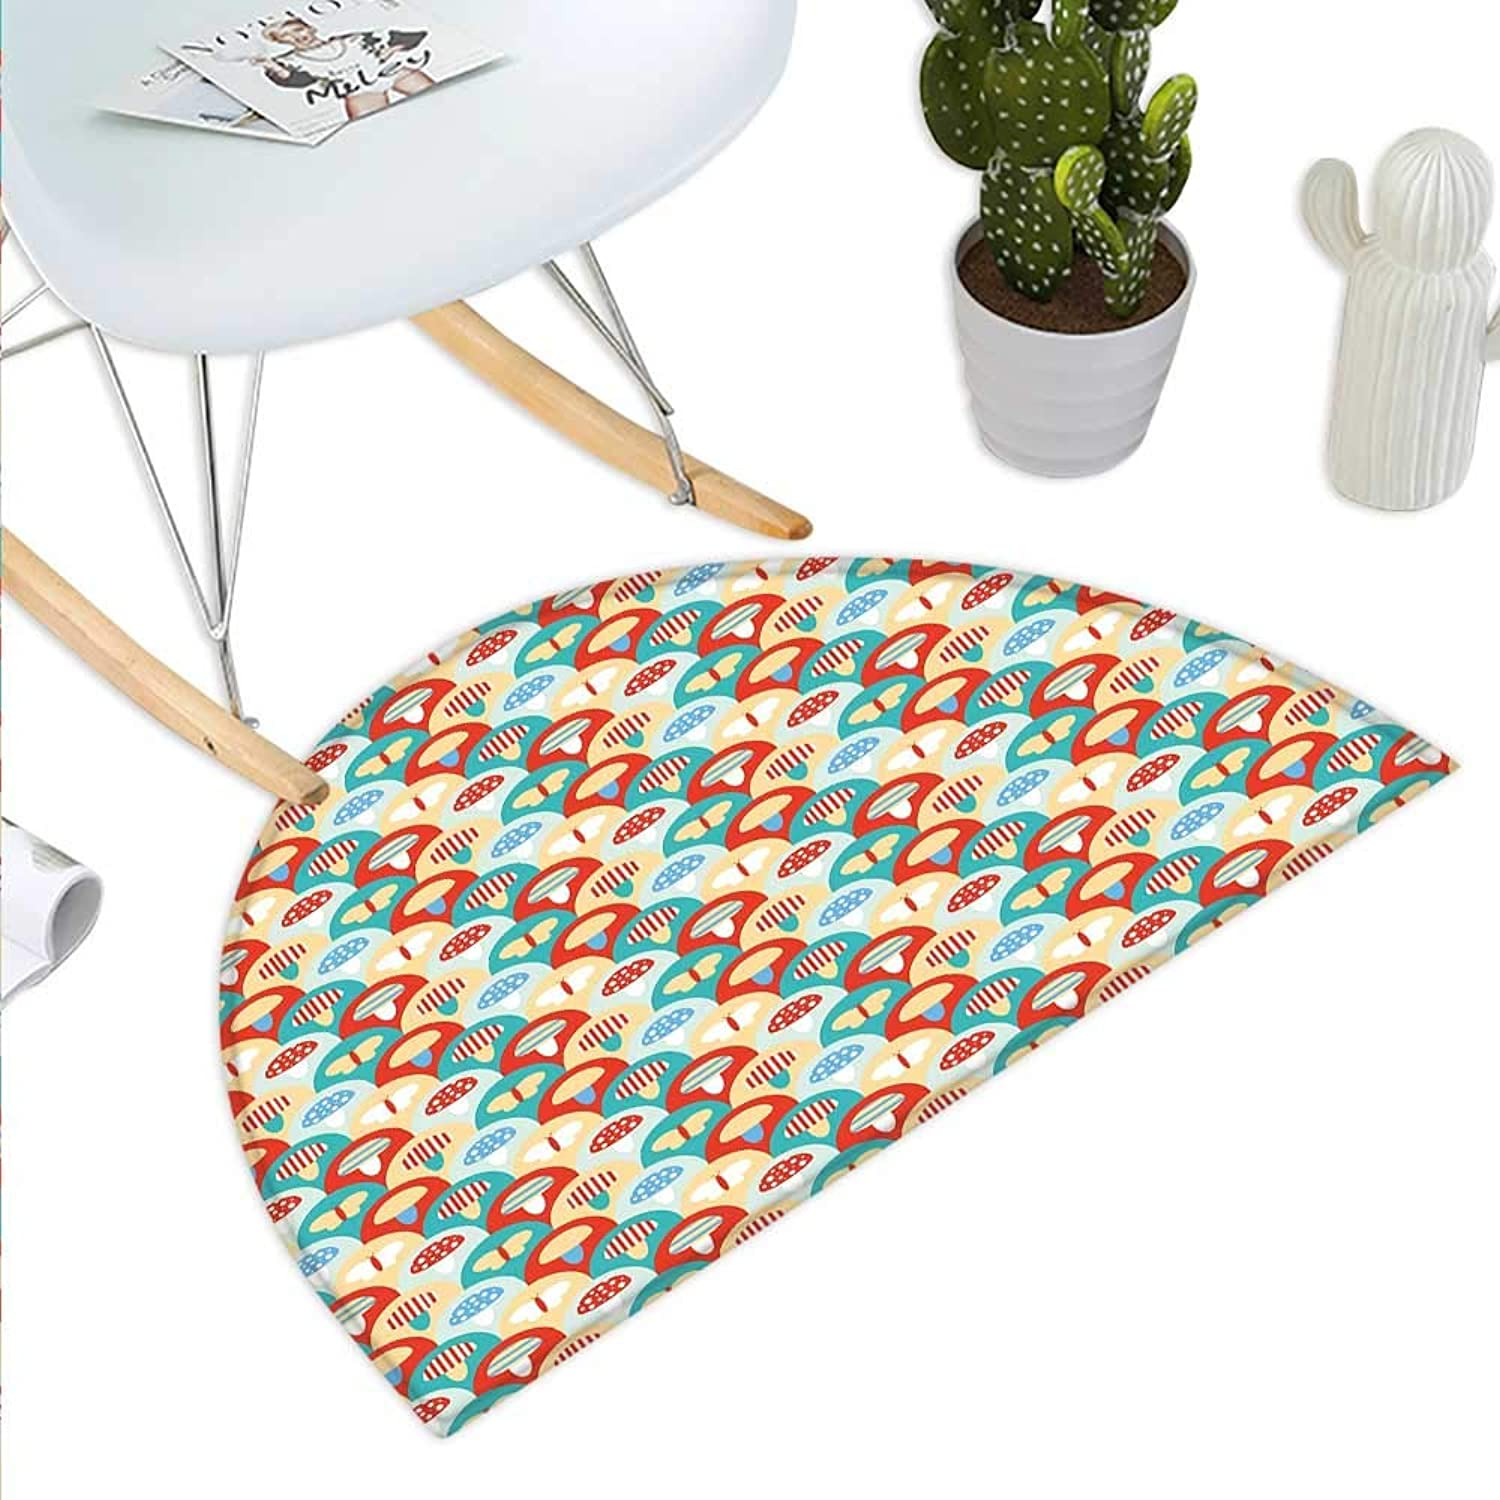 Mushroom Semicircle Doormat colorful Abstract Cartoon Style Retro Composition with Toadstools and Butterflies Halfmoon doormats H 35.4  xD 53.1  Multicolor